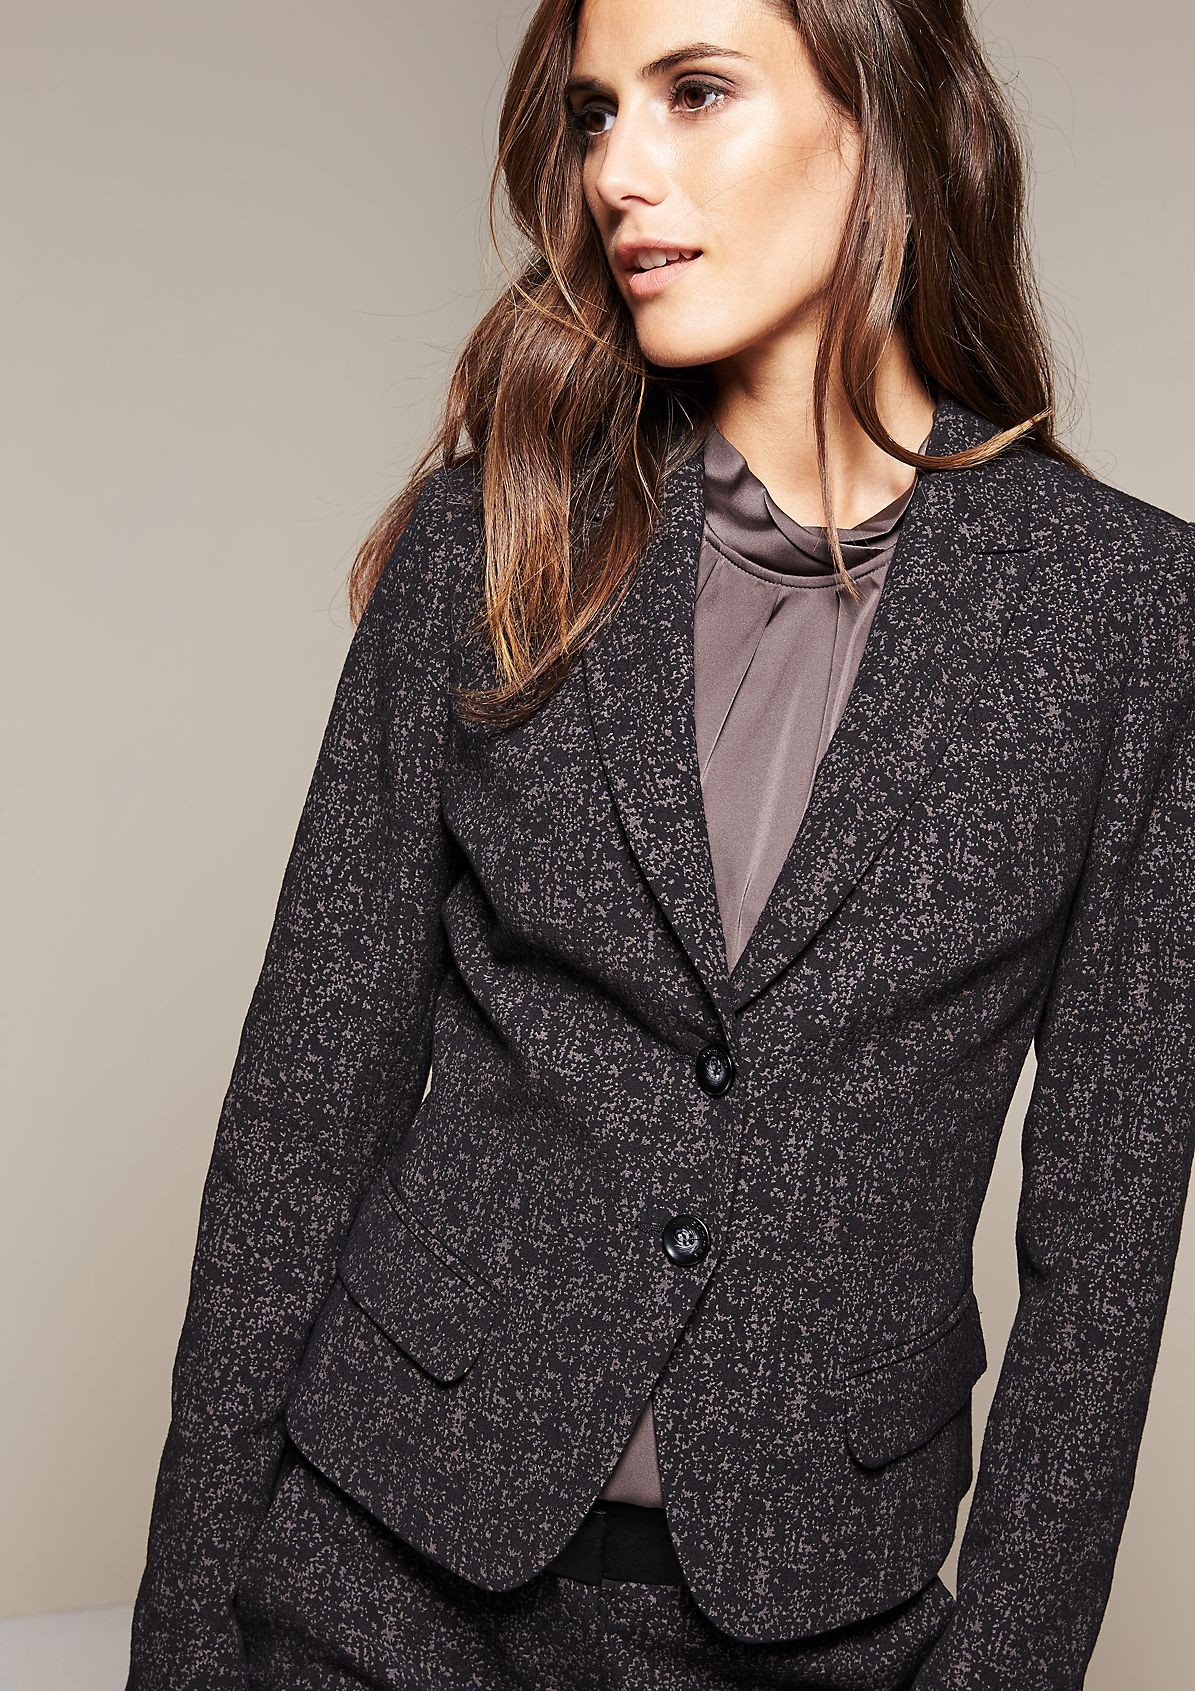 Feminine blazer with a distinctive jacquard pattern from s.Oliver